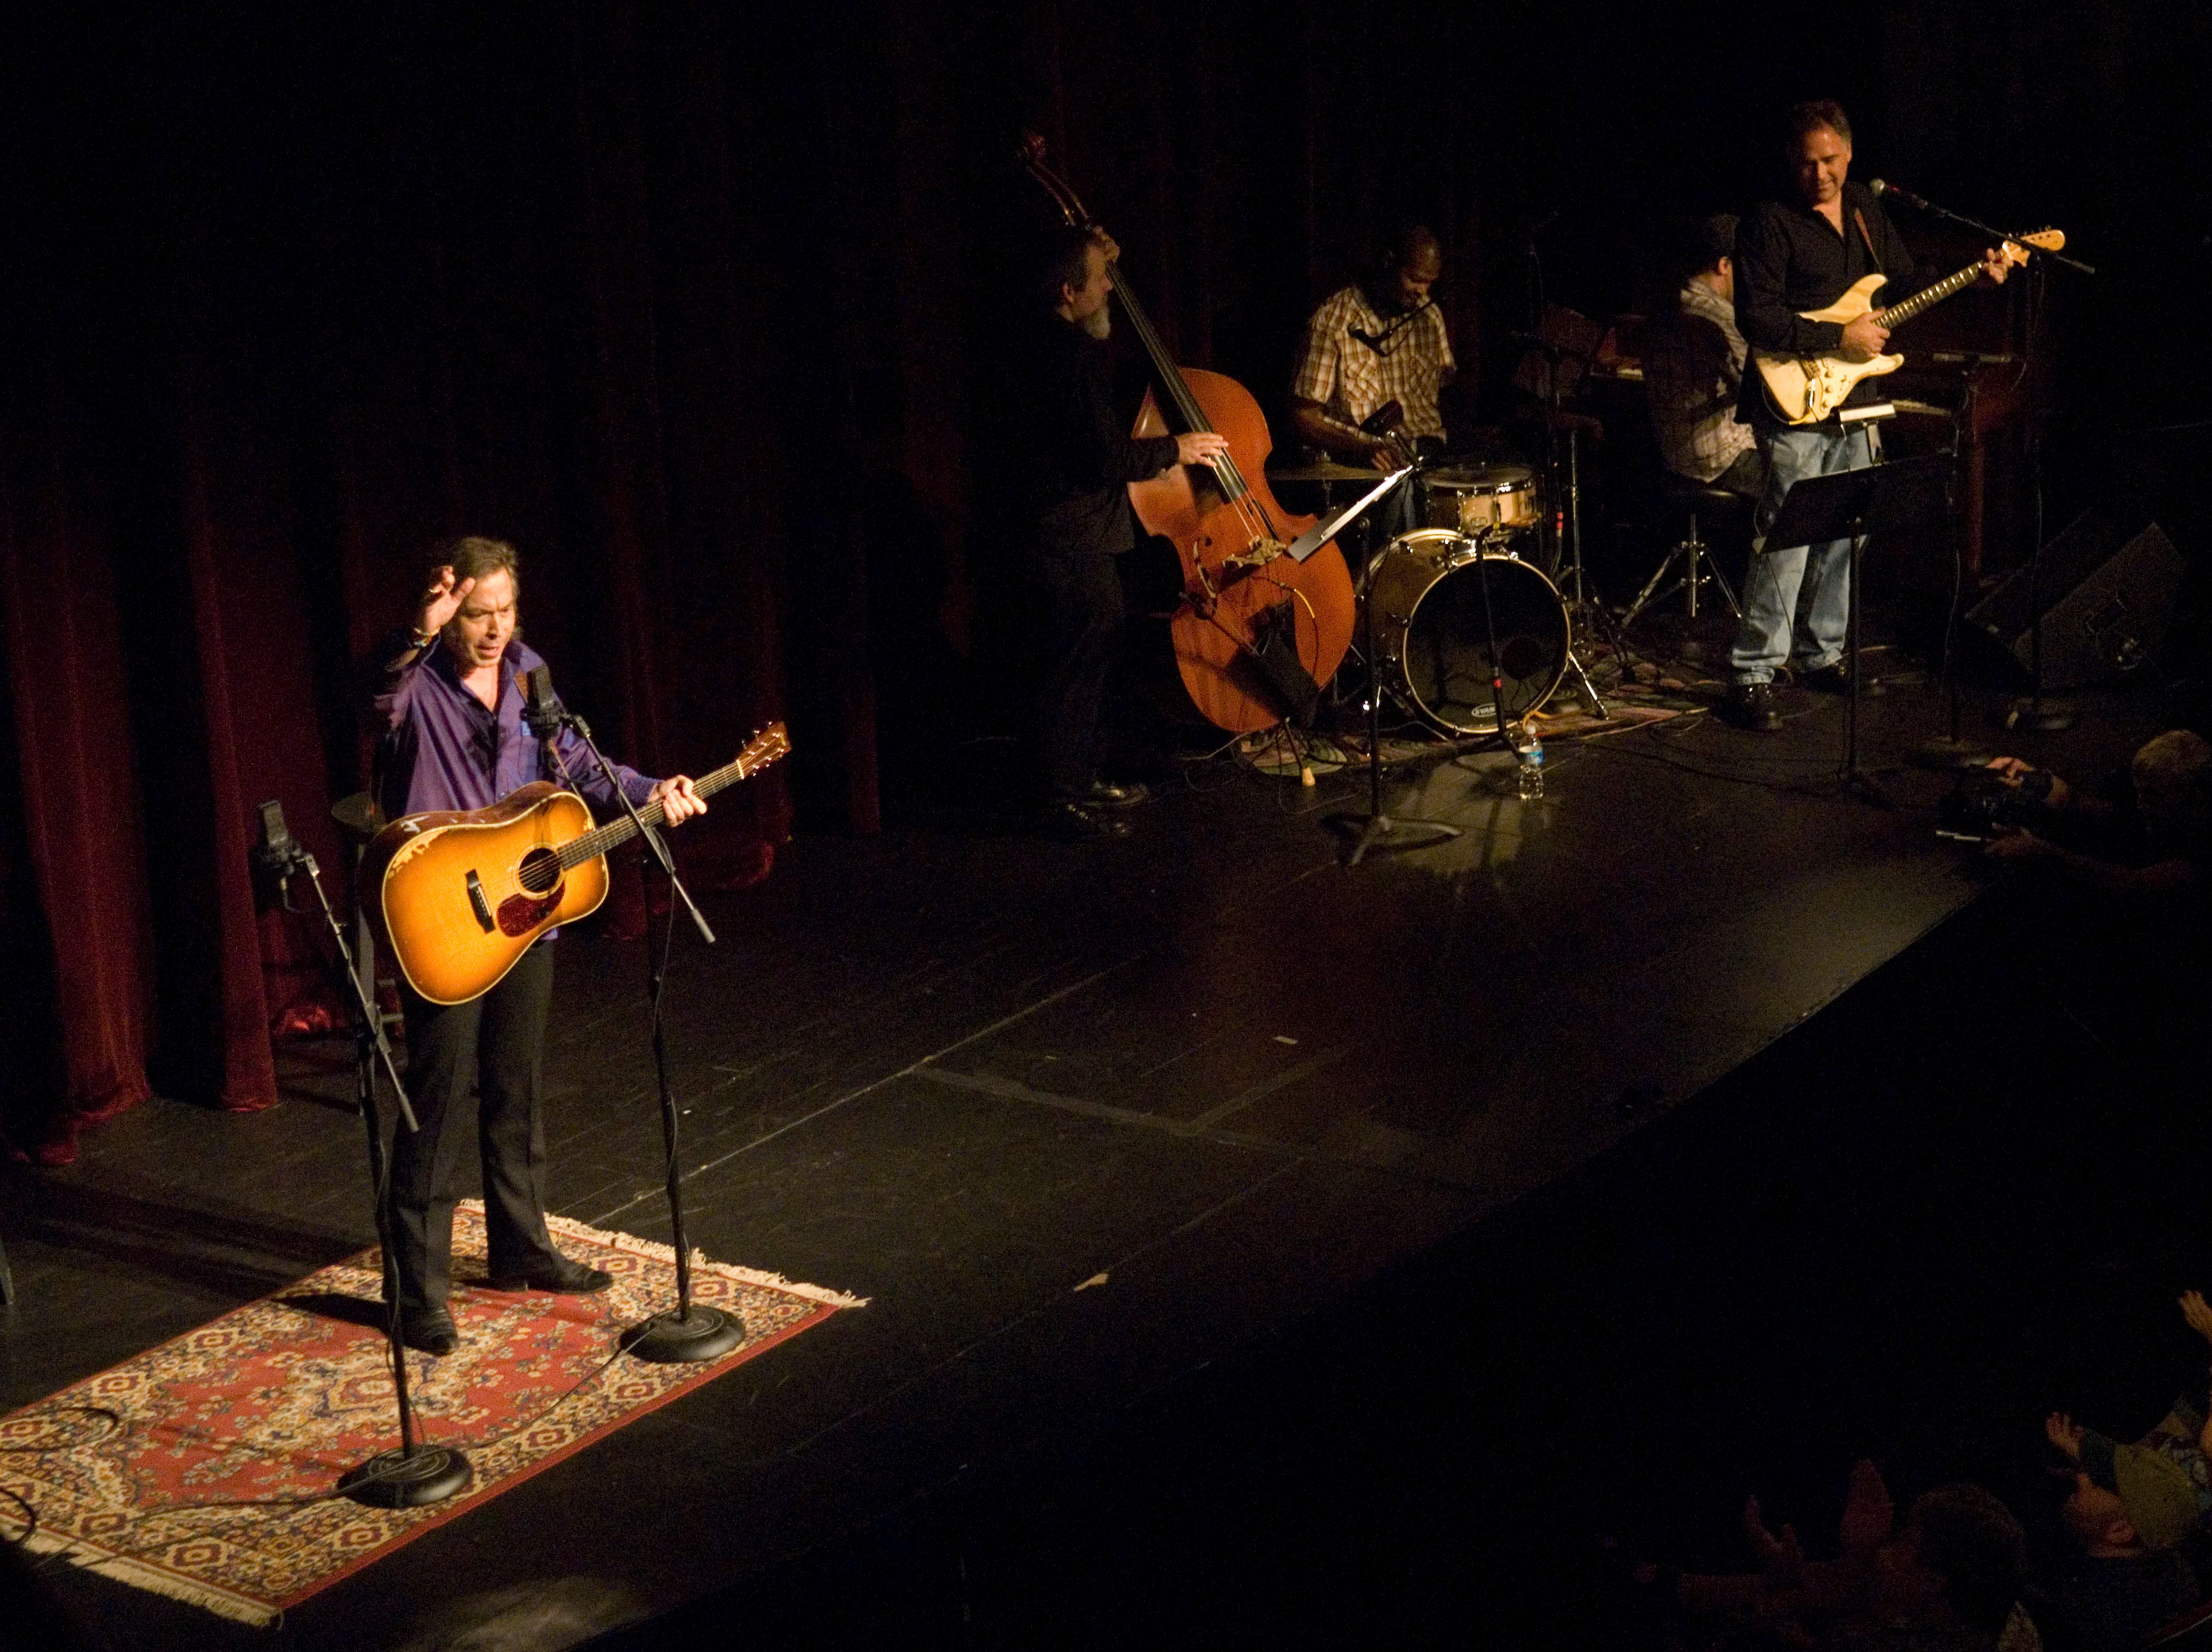 Tennessee Shines is a concert series at the Bijou Theatre. The show, hosted by Jim Lauderdale, debuted to a sold out crowd Wednesday night in 2008.